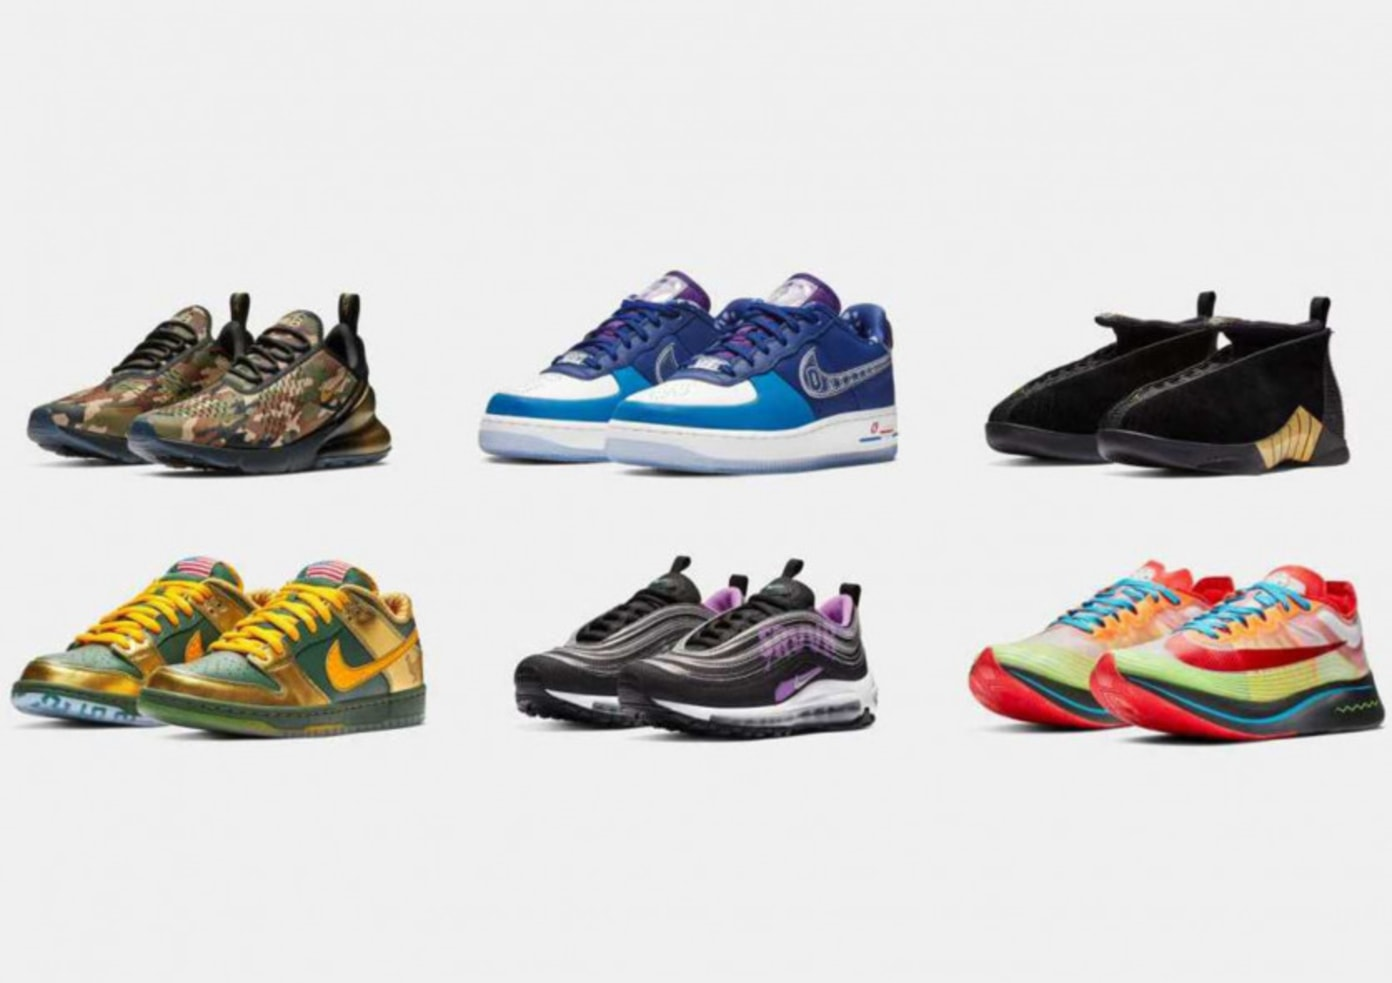 The Doernbecher x Nike Freestyle 2018 Collection